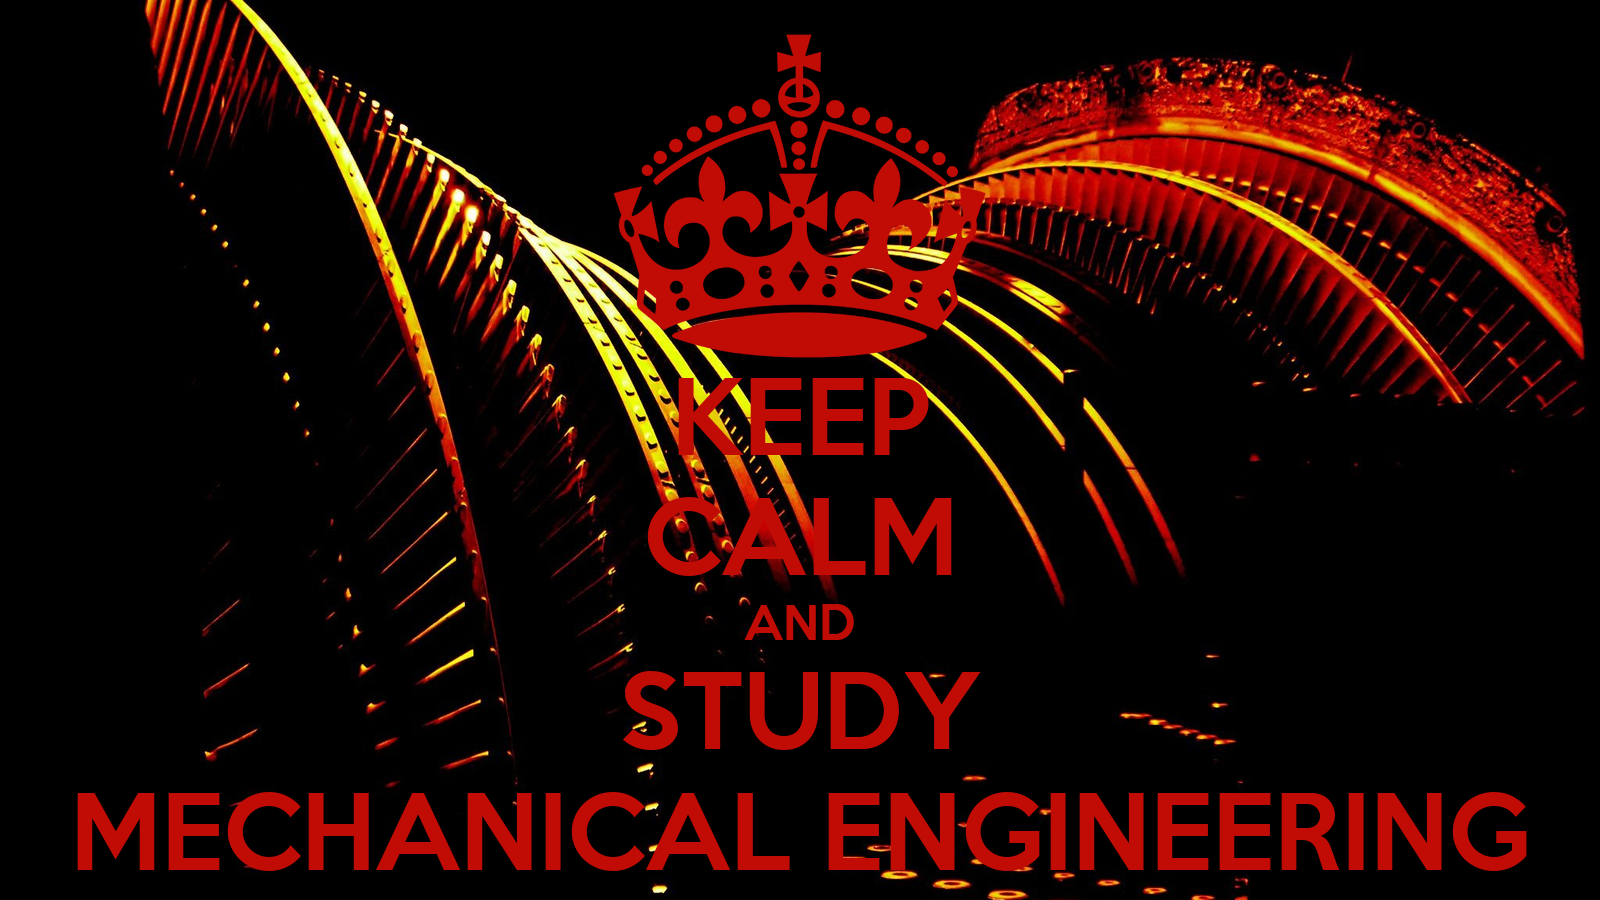 I chose to study mechanical engineering